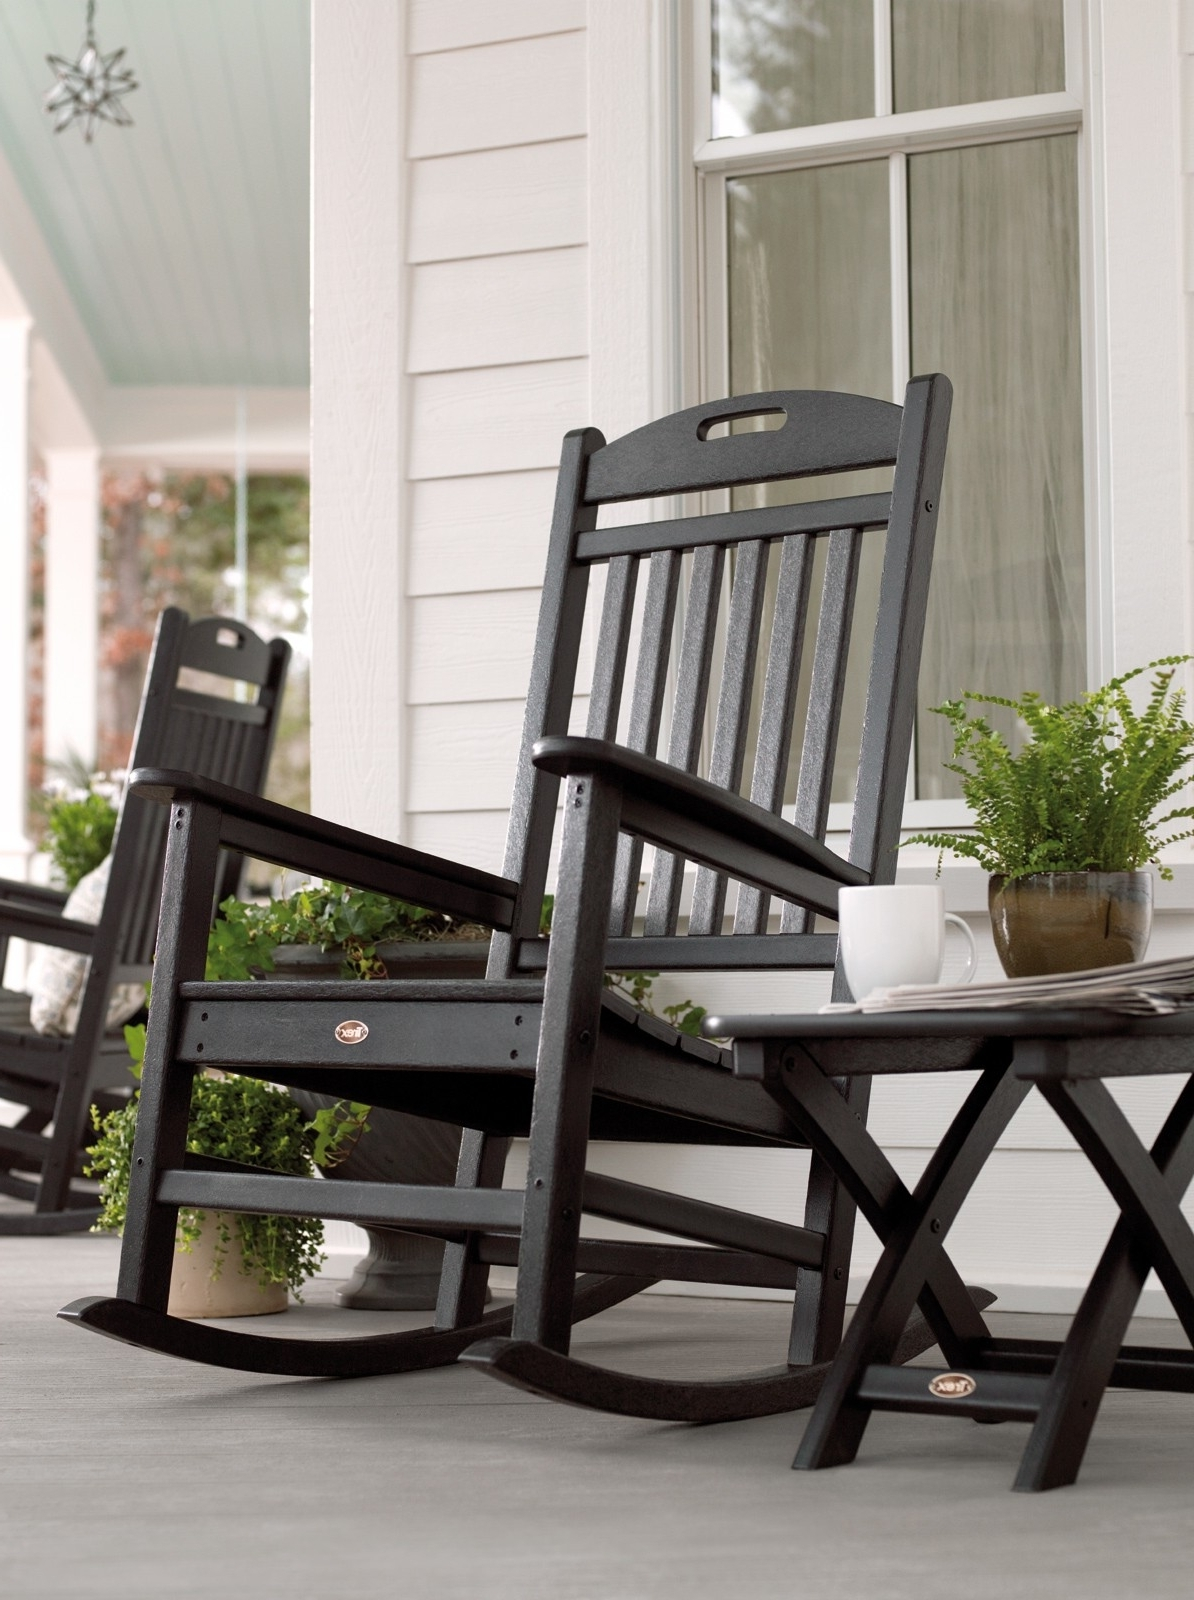 Patio Rocking Chairs And Table Within Most Popular Patio & Garden : Outdoor Rocking Chair Seat Cushions Outdoor Rocking (View 5 of 15)